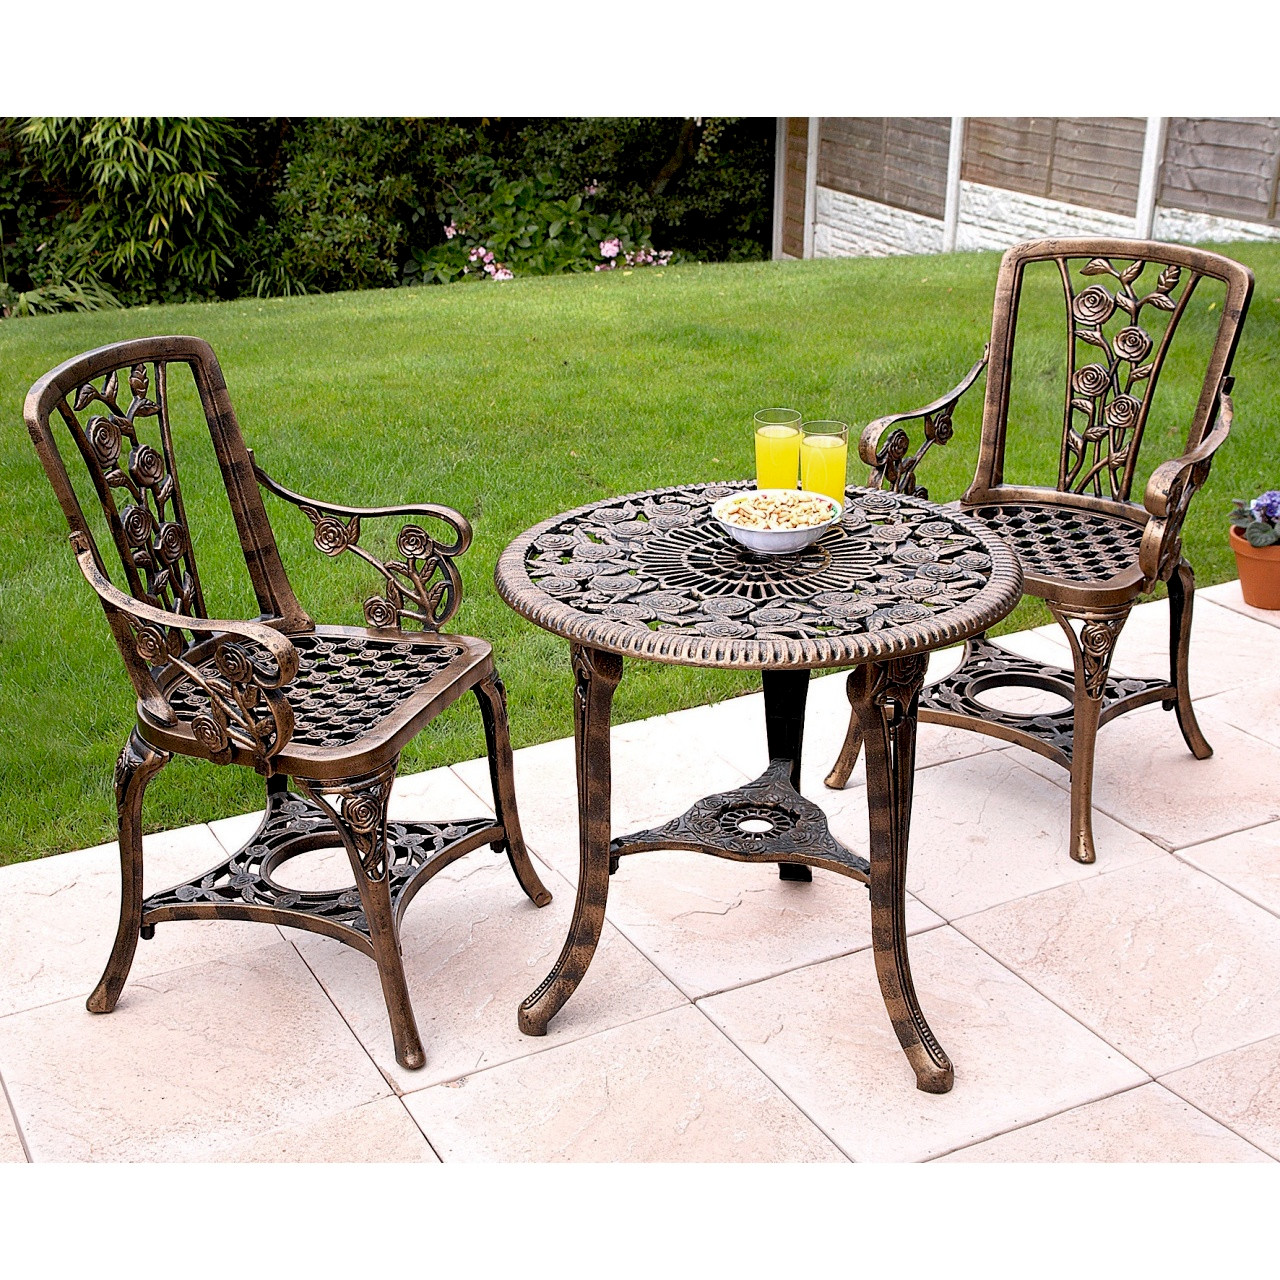 All-weather Rose Patio Set - Coming Soon - Pre-Order Now!